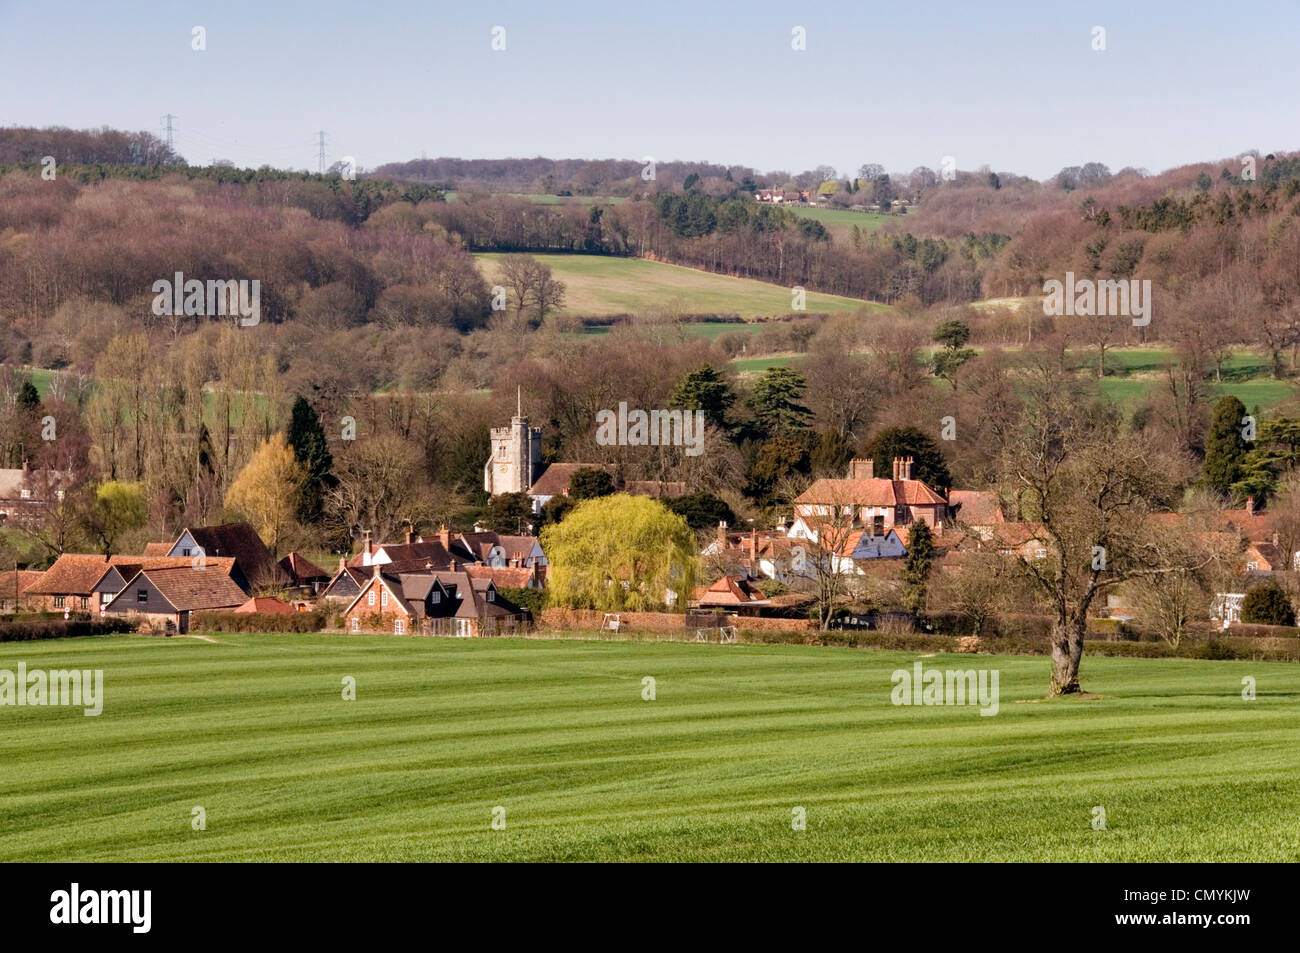 Chiltern Hills - view Little Missenden village - across green field of spring wheat - marked like a fresh cut lawn - Stock Image